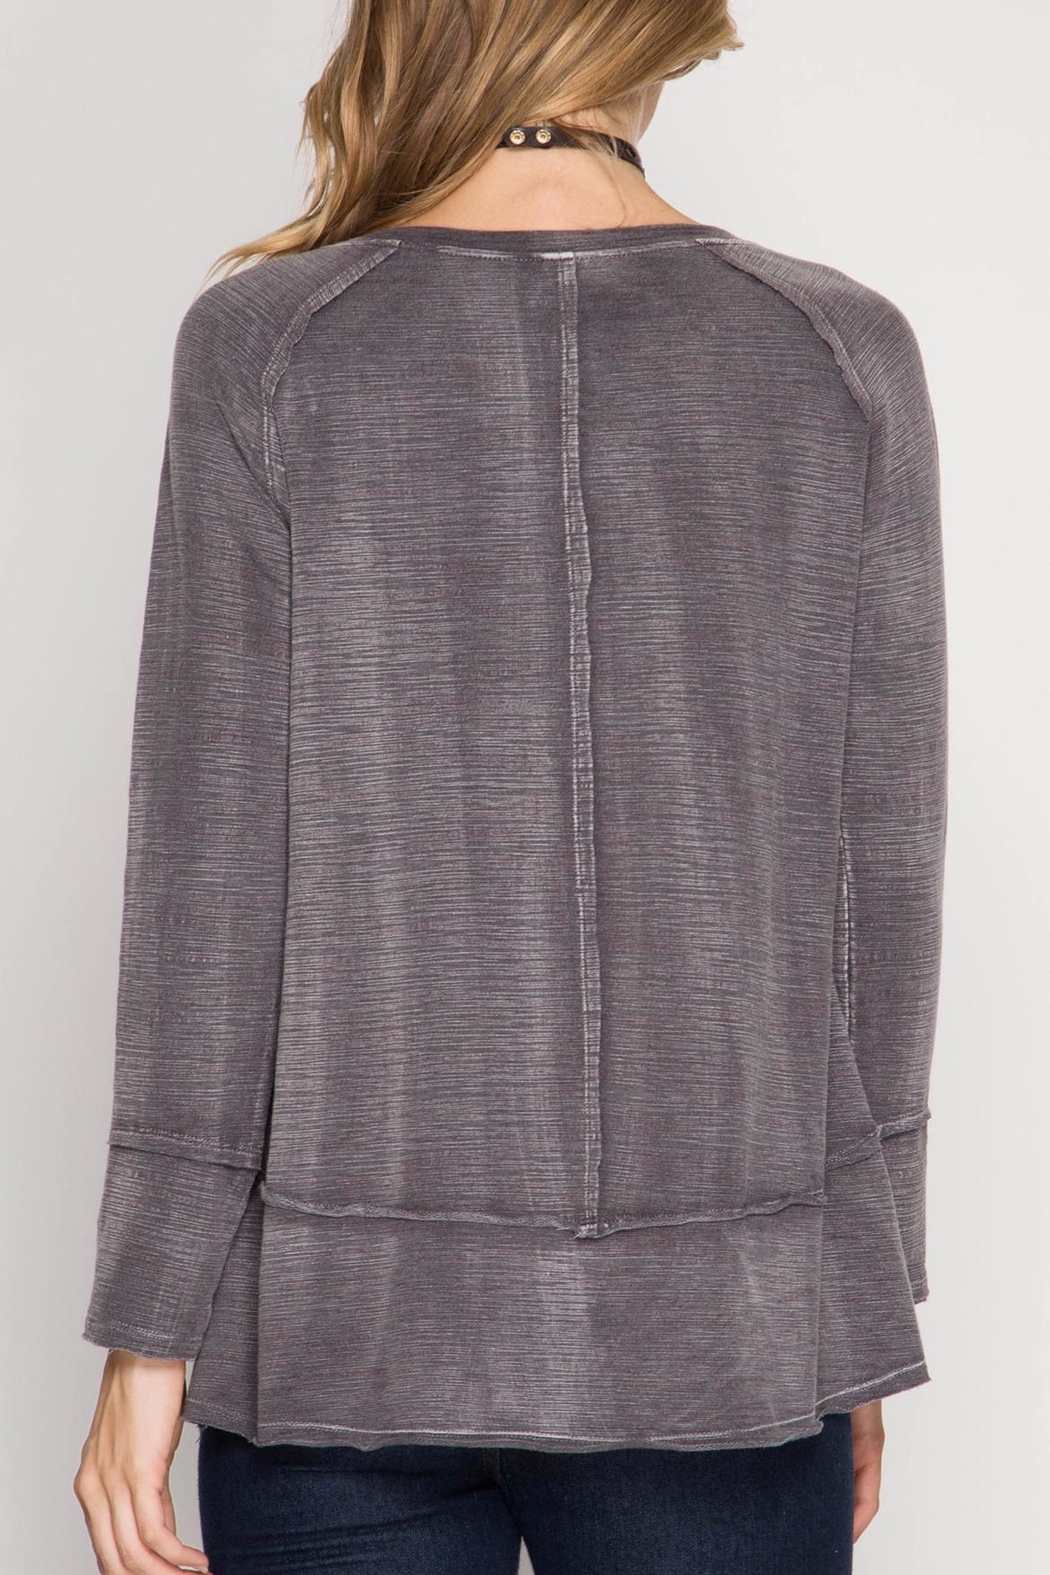 She + Sky Soft Washed Top - Front Full Image